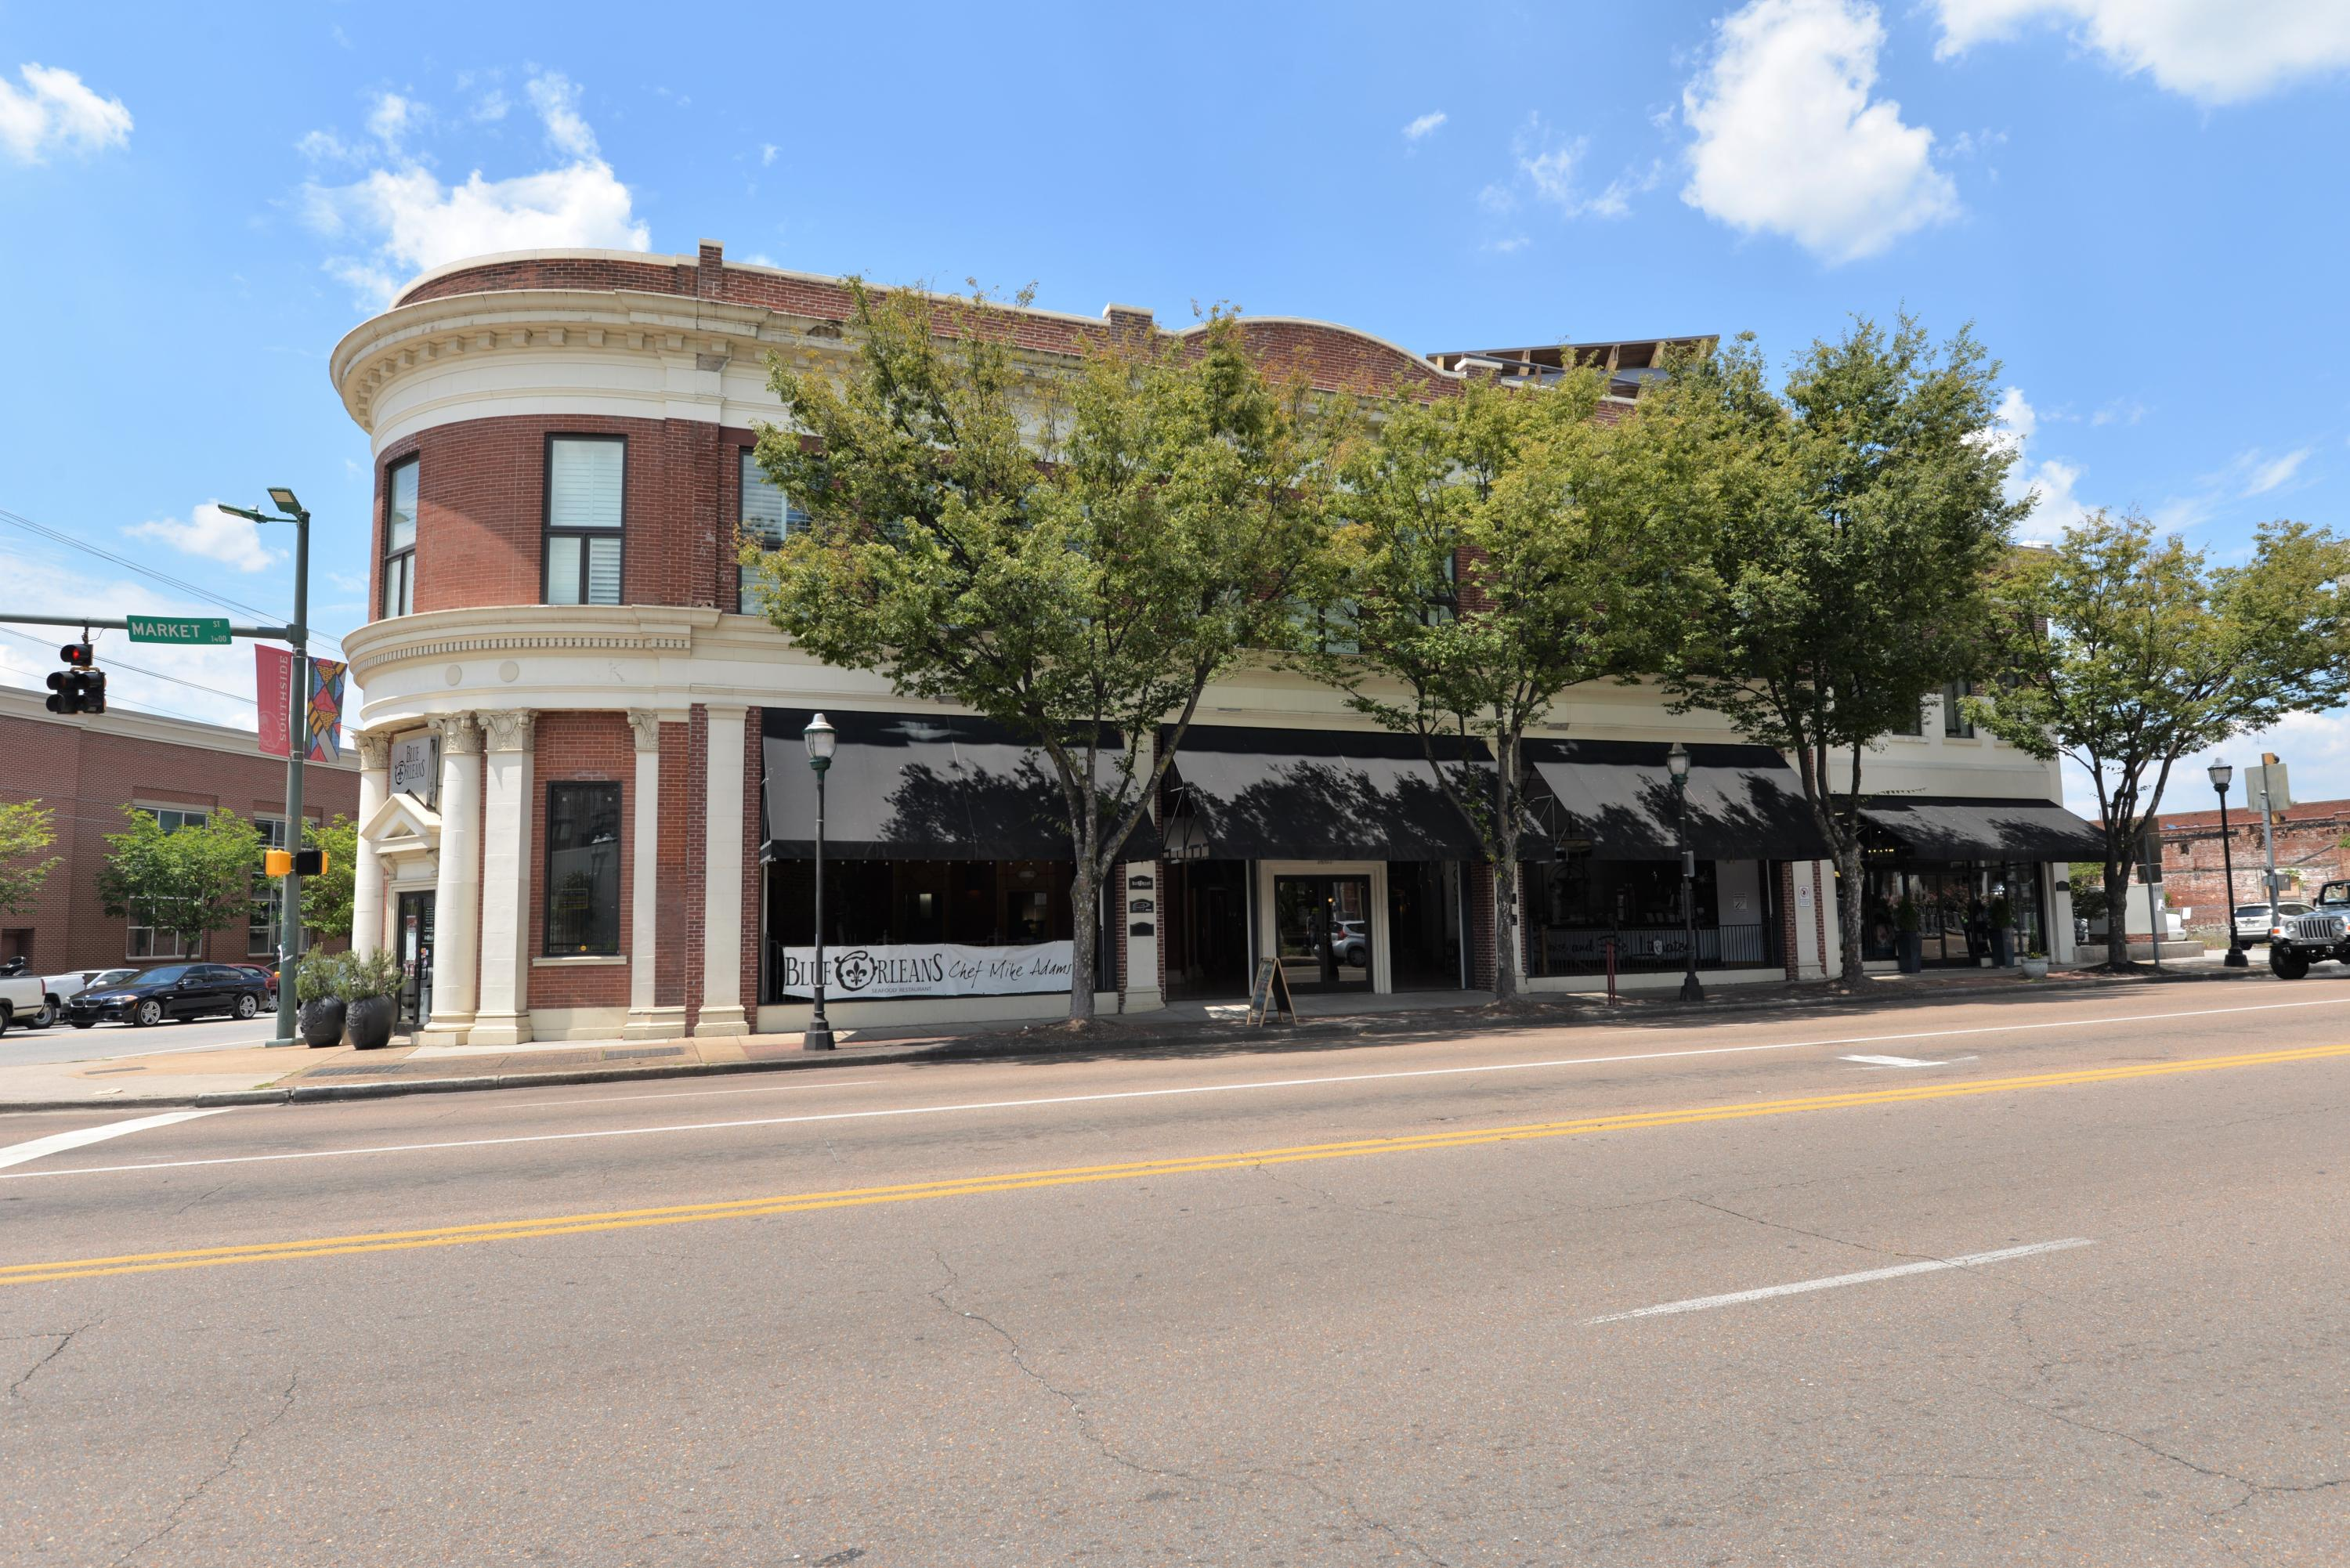 1467  Market 208 St, Chattanooga, Tennessee